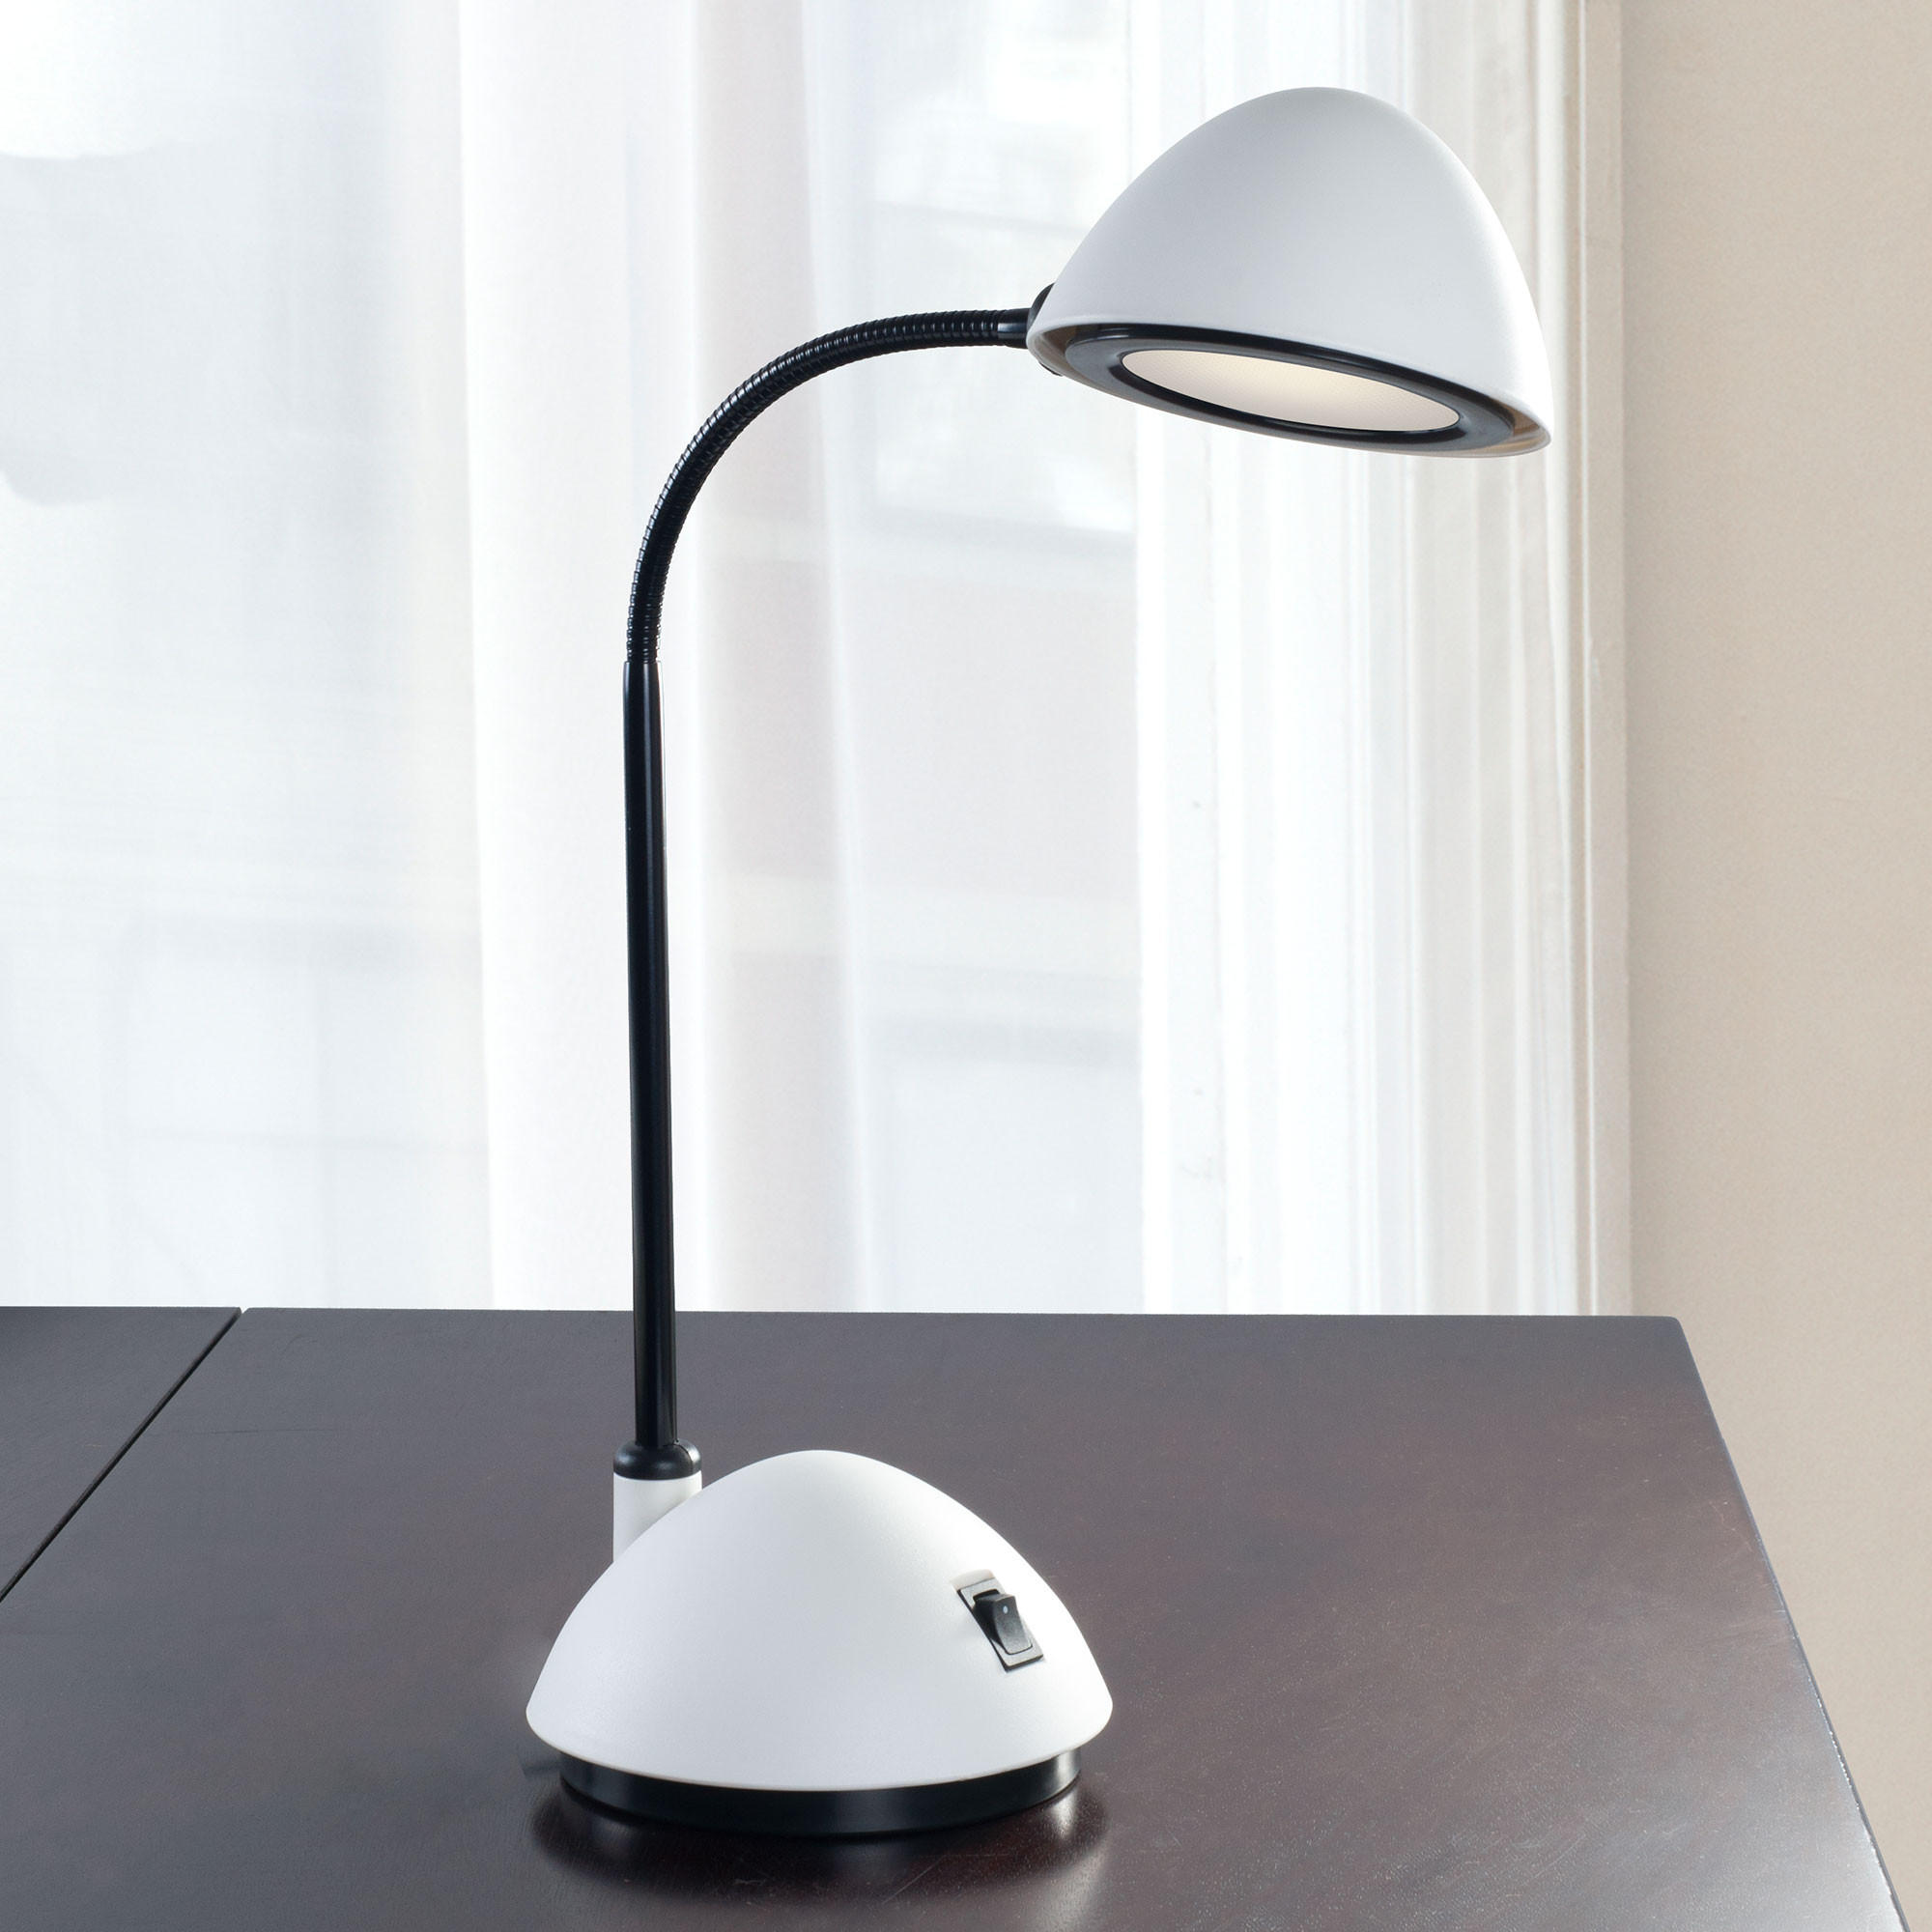 Best ideas about Bright Desk Lamp . Save or Pin Lavish Home Bright Energy Saving LED Desk Lamp White Now.